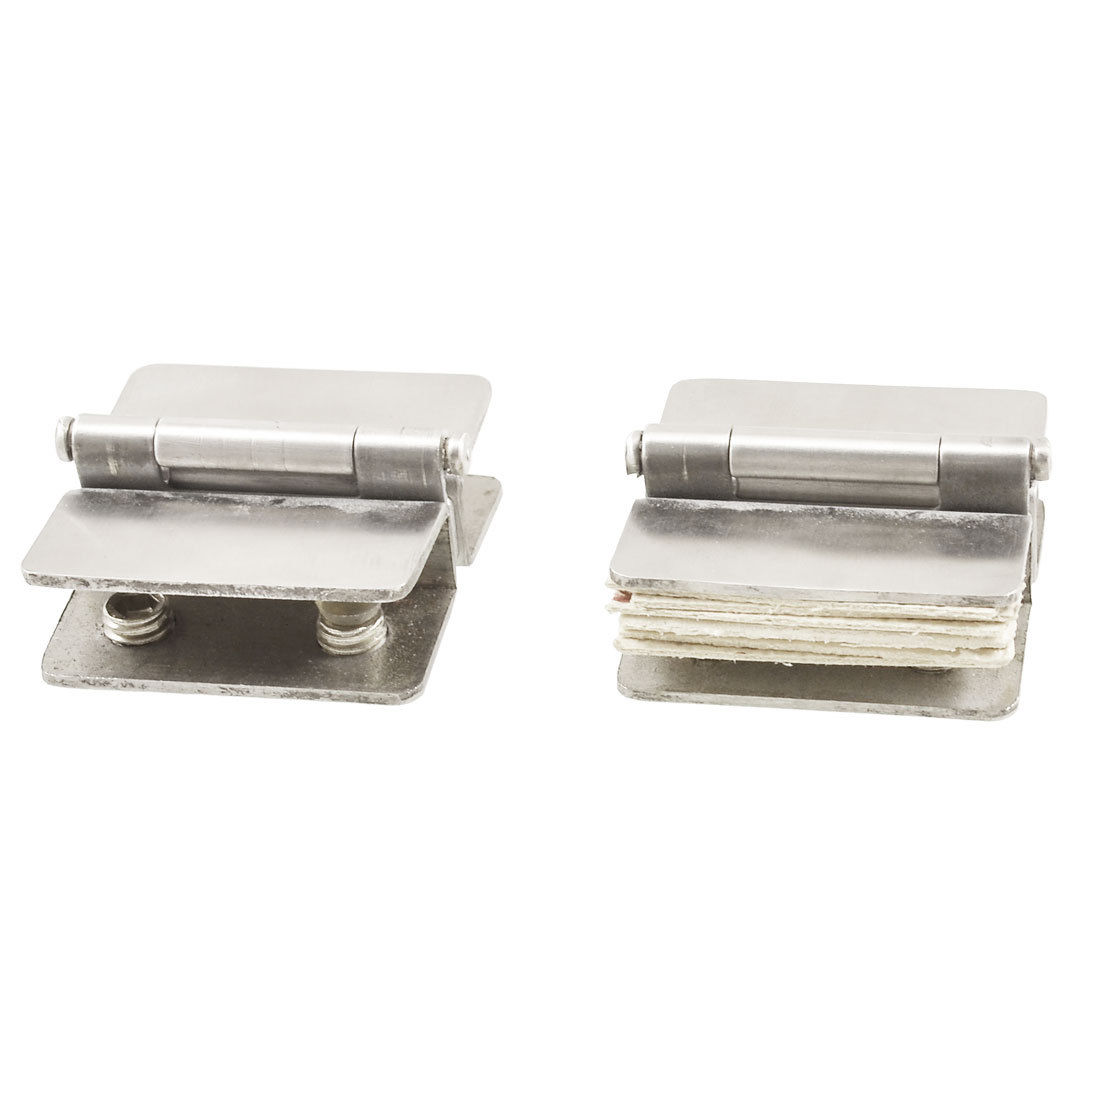 Hardware Glass to Glass Door Double Clamp Shower Hinges 2 Pcs LXM(China (Mainland))